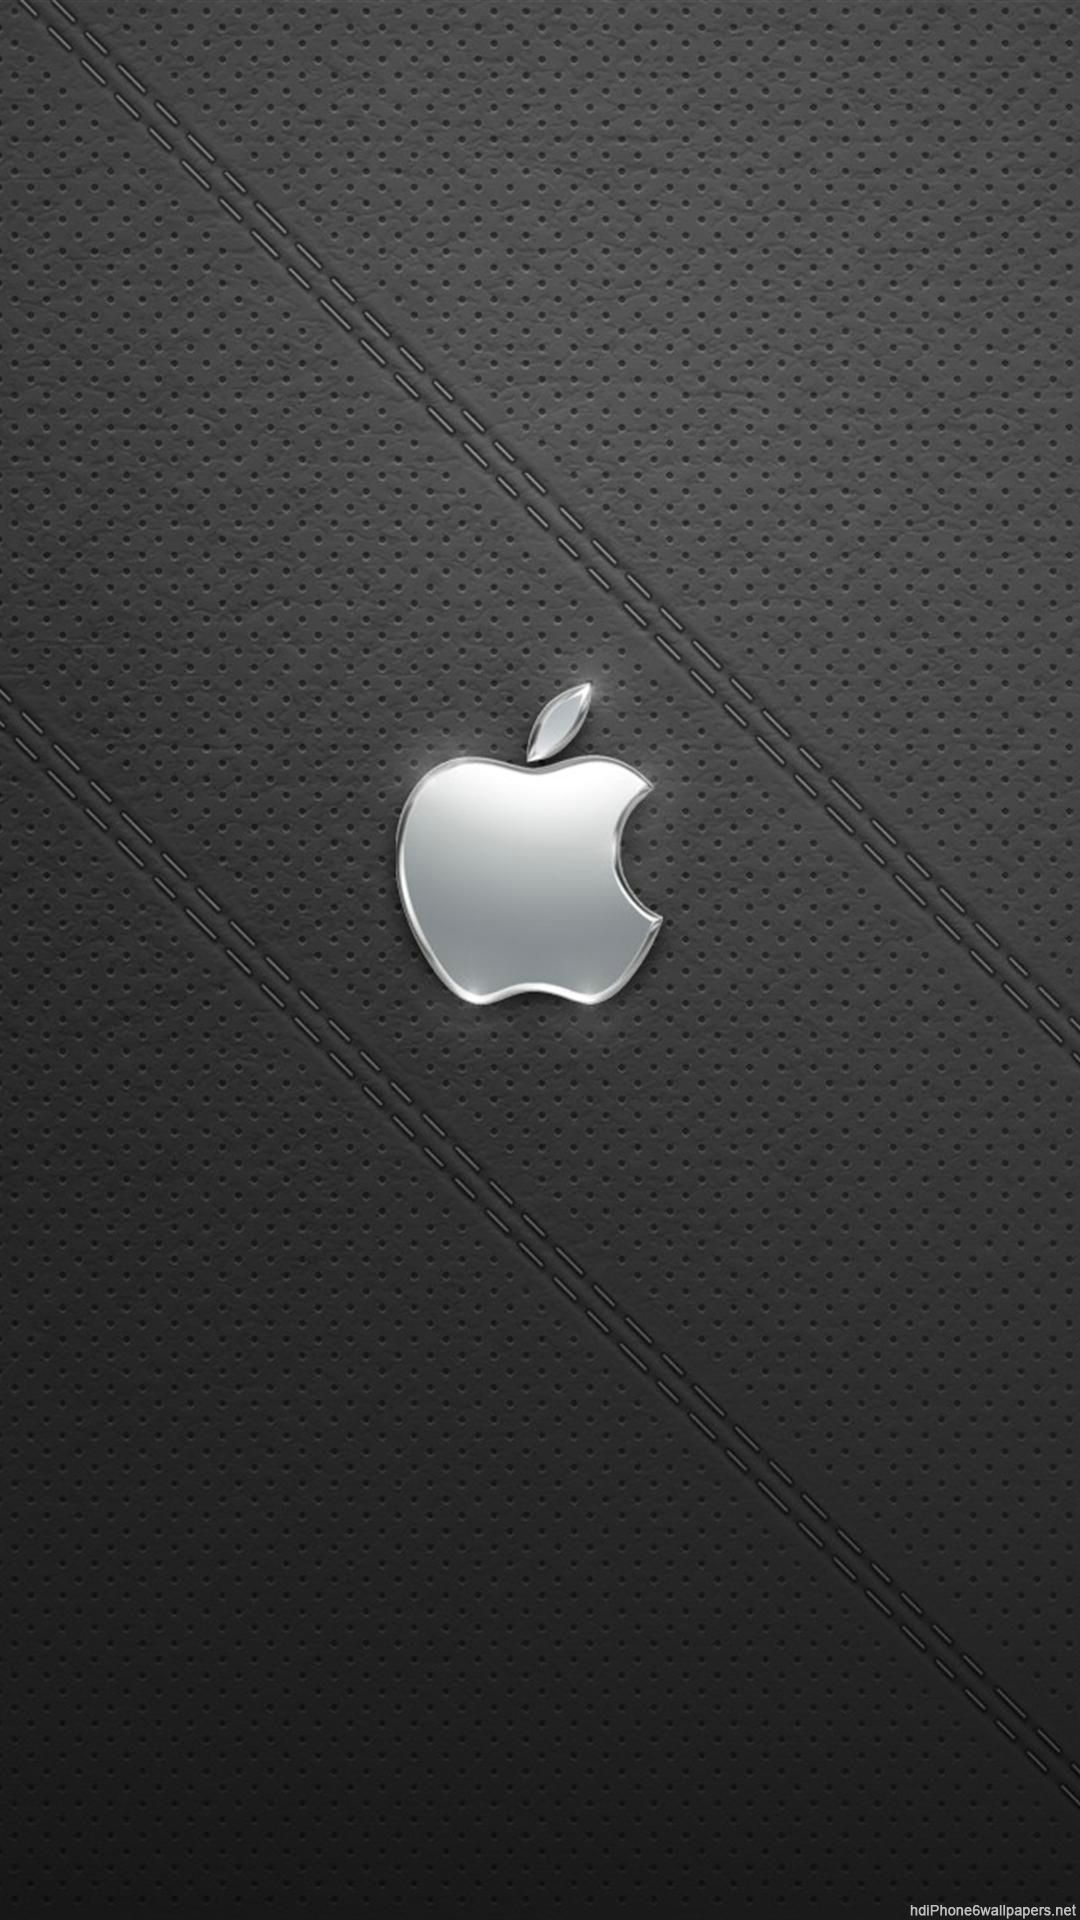 Cool Wallpapers Hd P For Mac